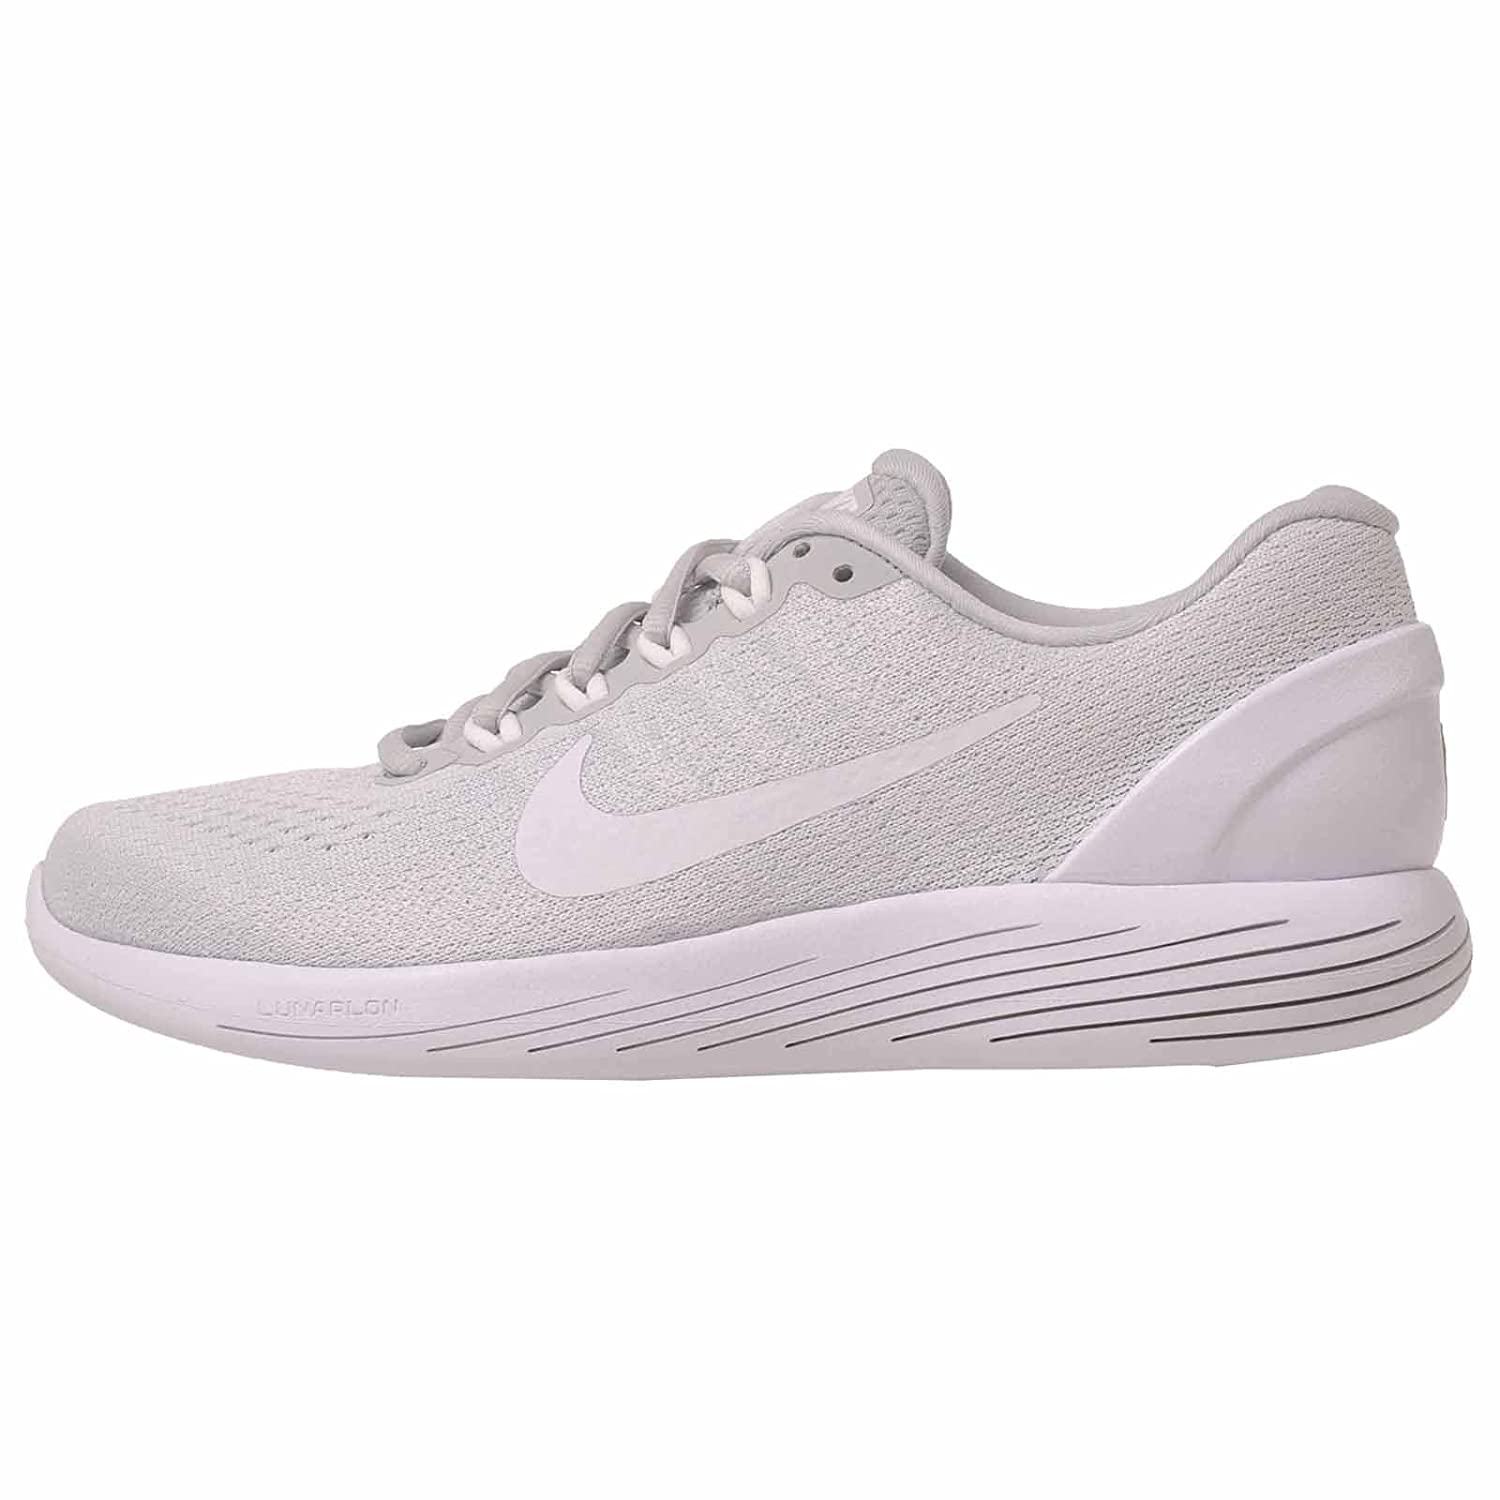 baskets pour pas cher ef591 7dd6c Nike Lunarglide 9 Pure Platinum/White/White Womens Running Shoes Size 7.5